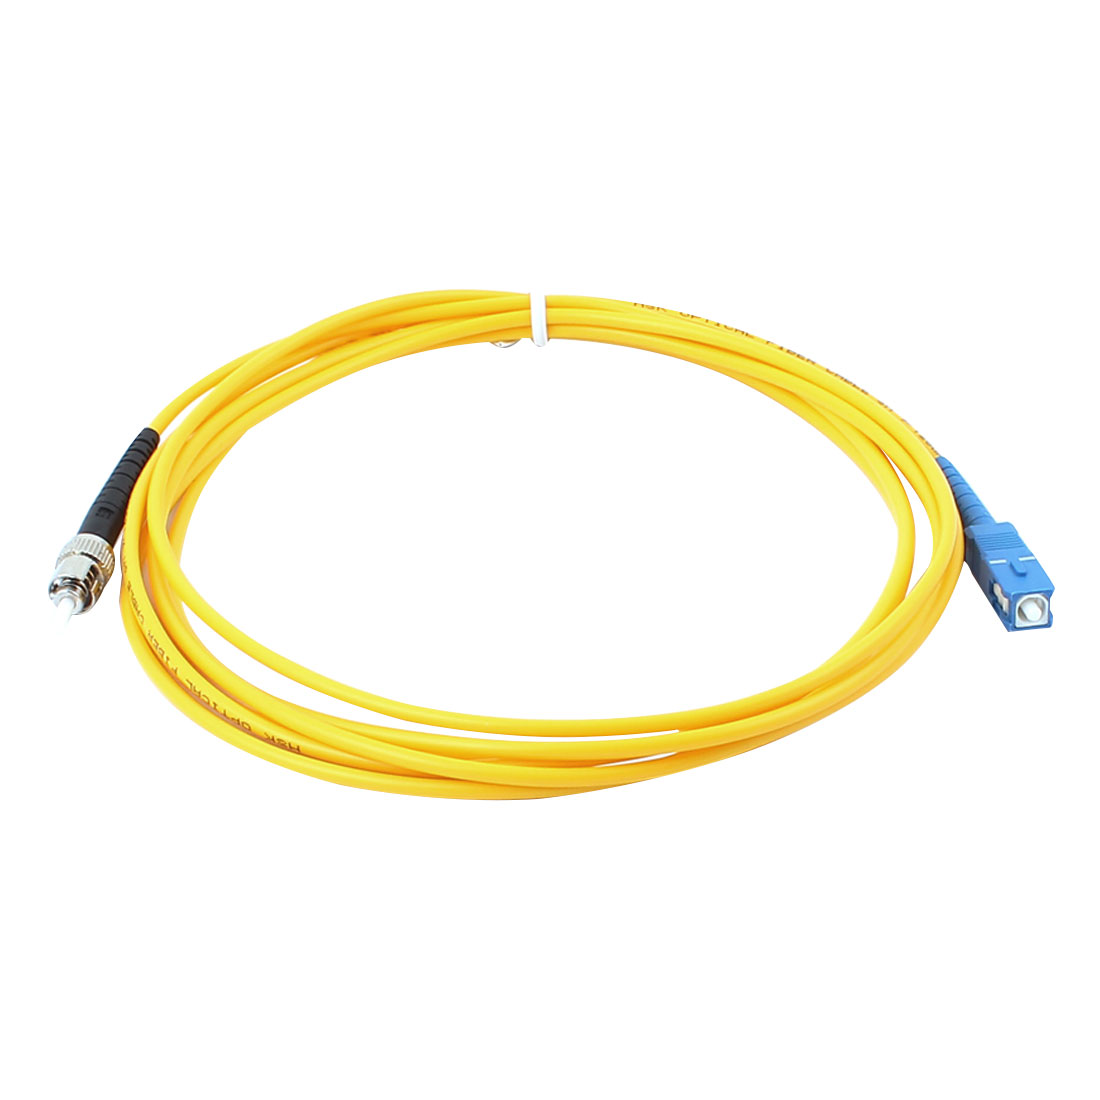 2 Pcs Simplex Single Mode SC to ST Optical Fiber Patch Cable 2 Meters